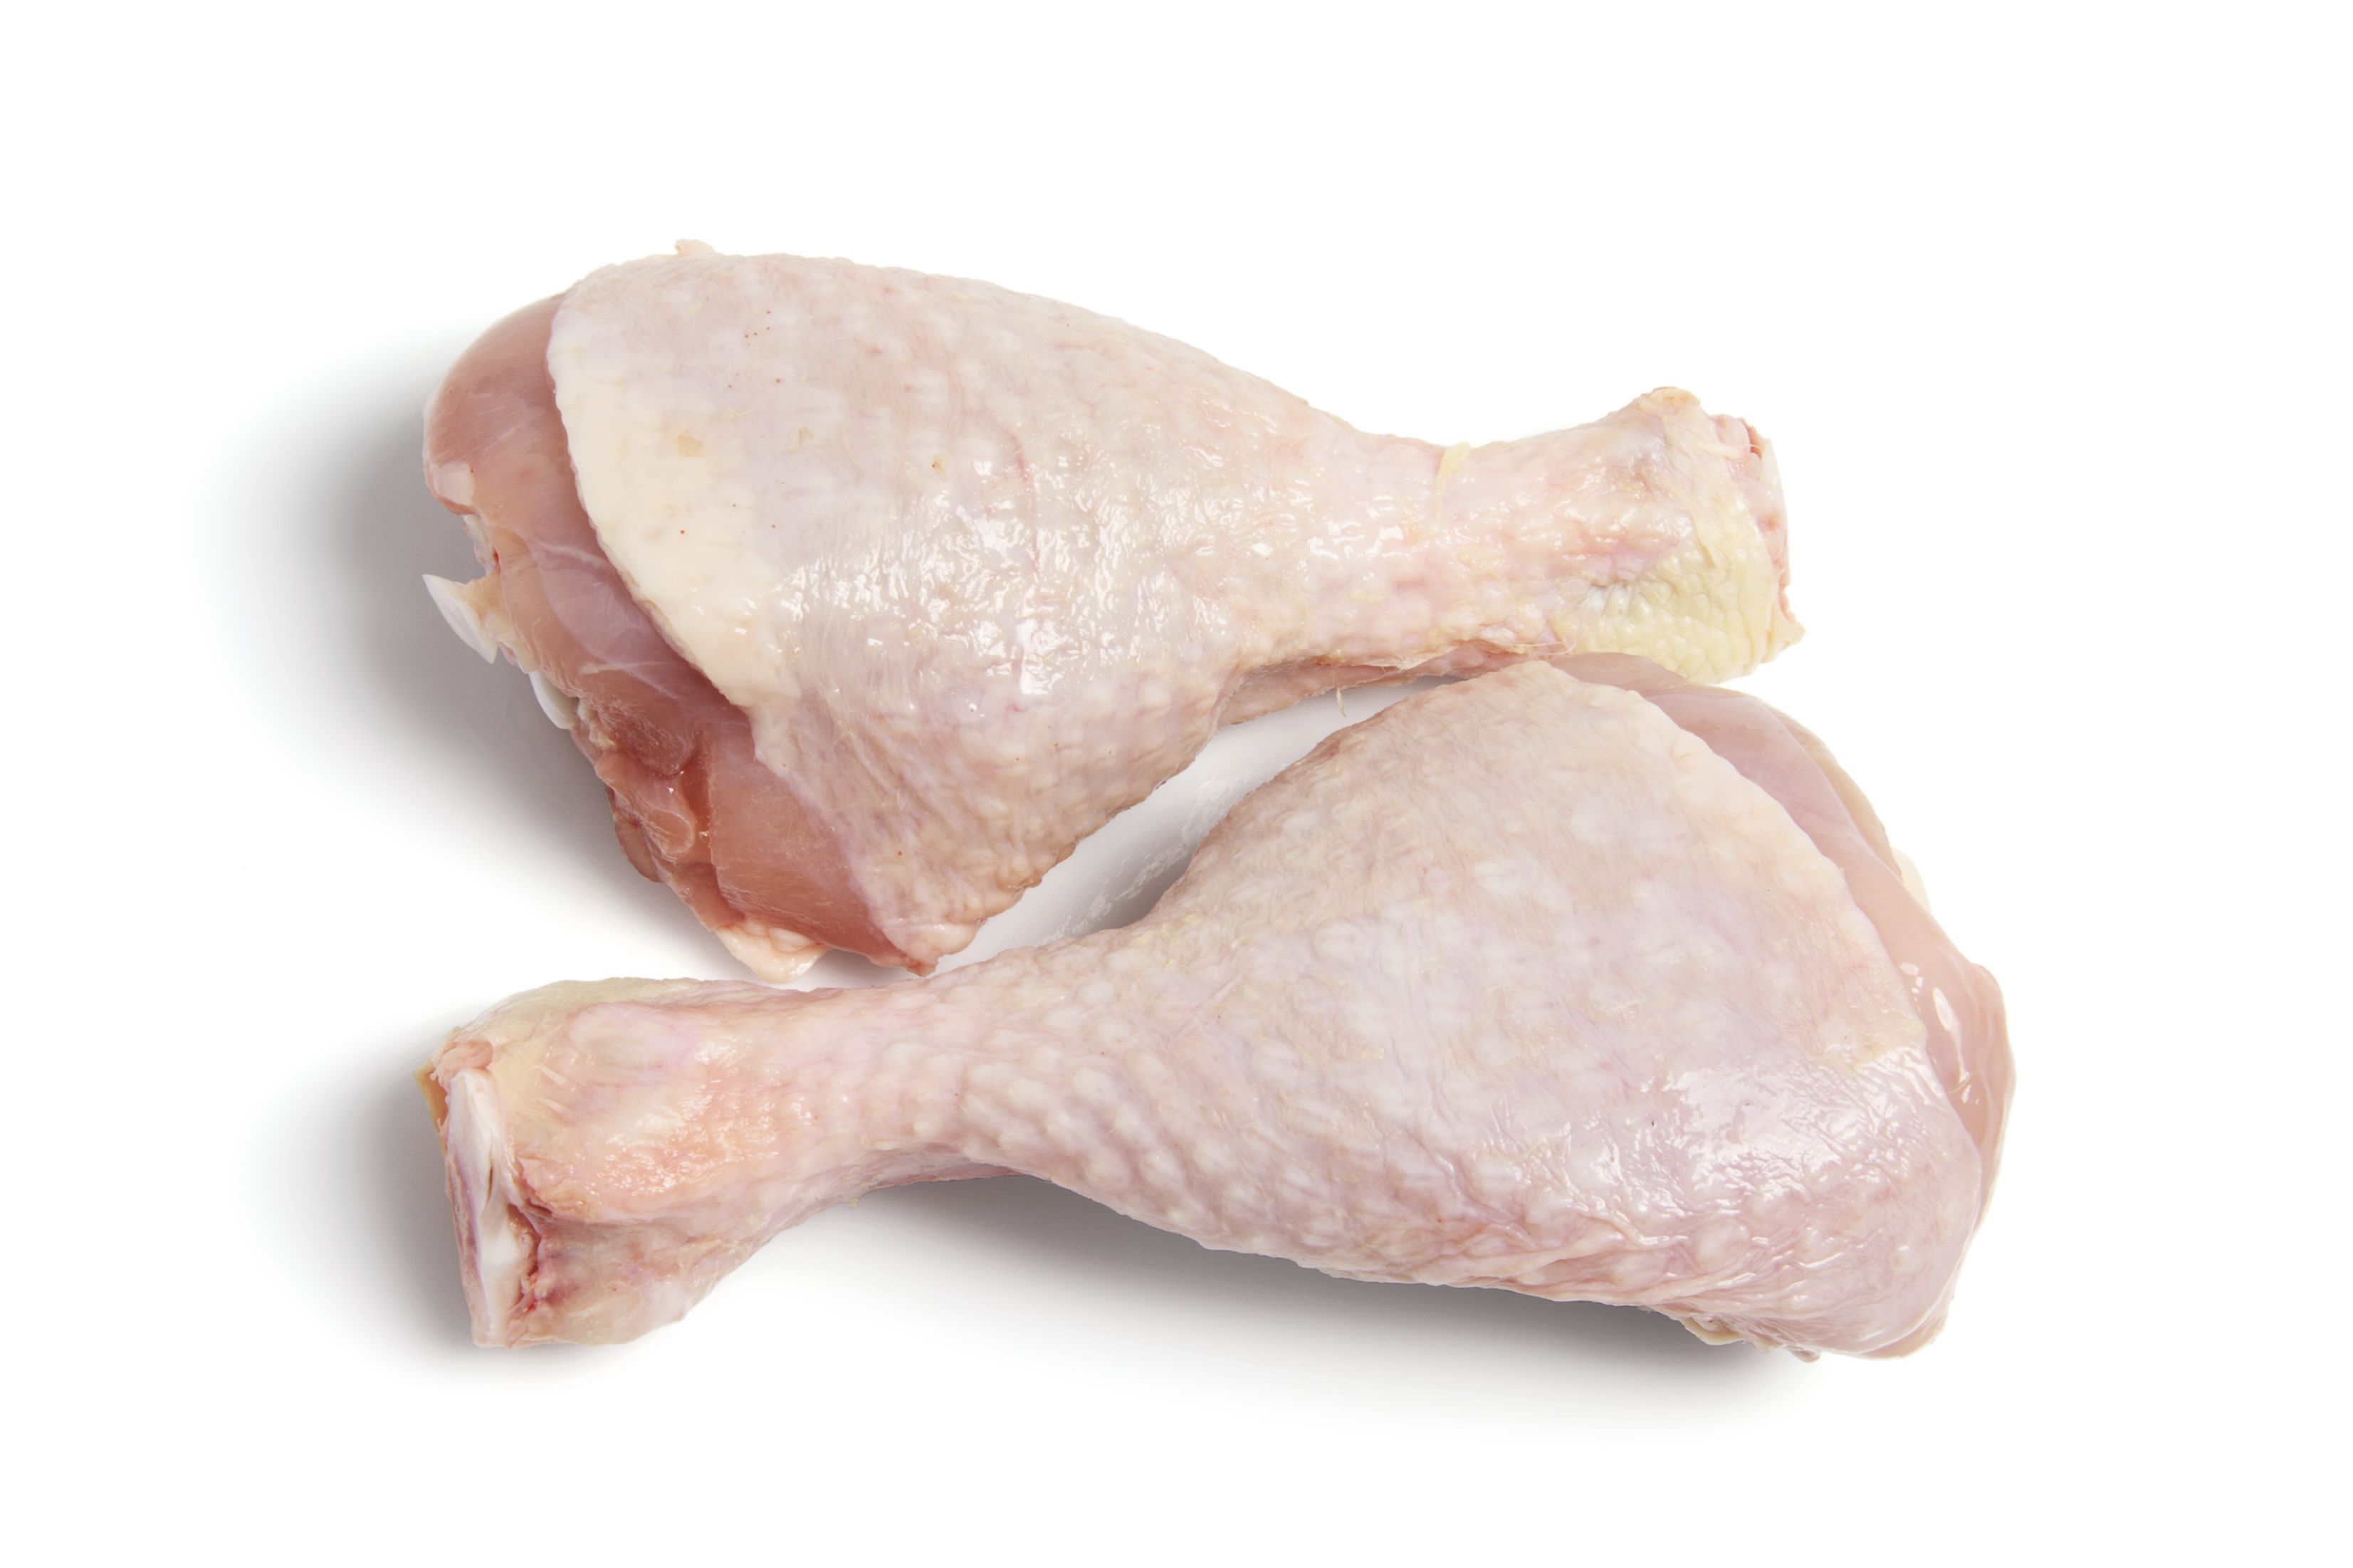 Chicken's mild flavor, tender texture and reasonable price make it a staple in many households. Countless casserole recipes call for cooked or partially-cooked, boneless skinless chicken breasts.